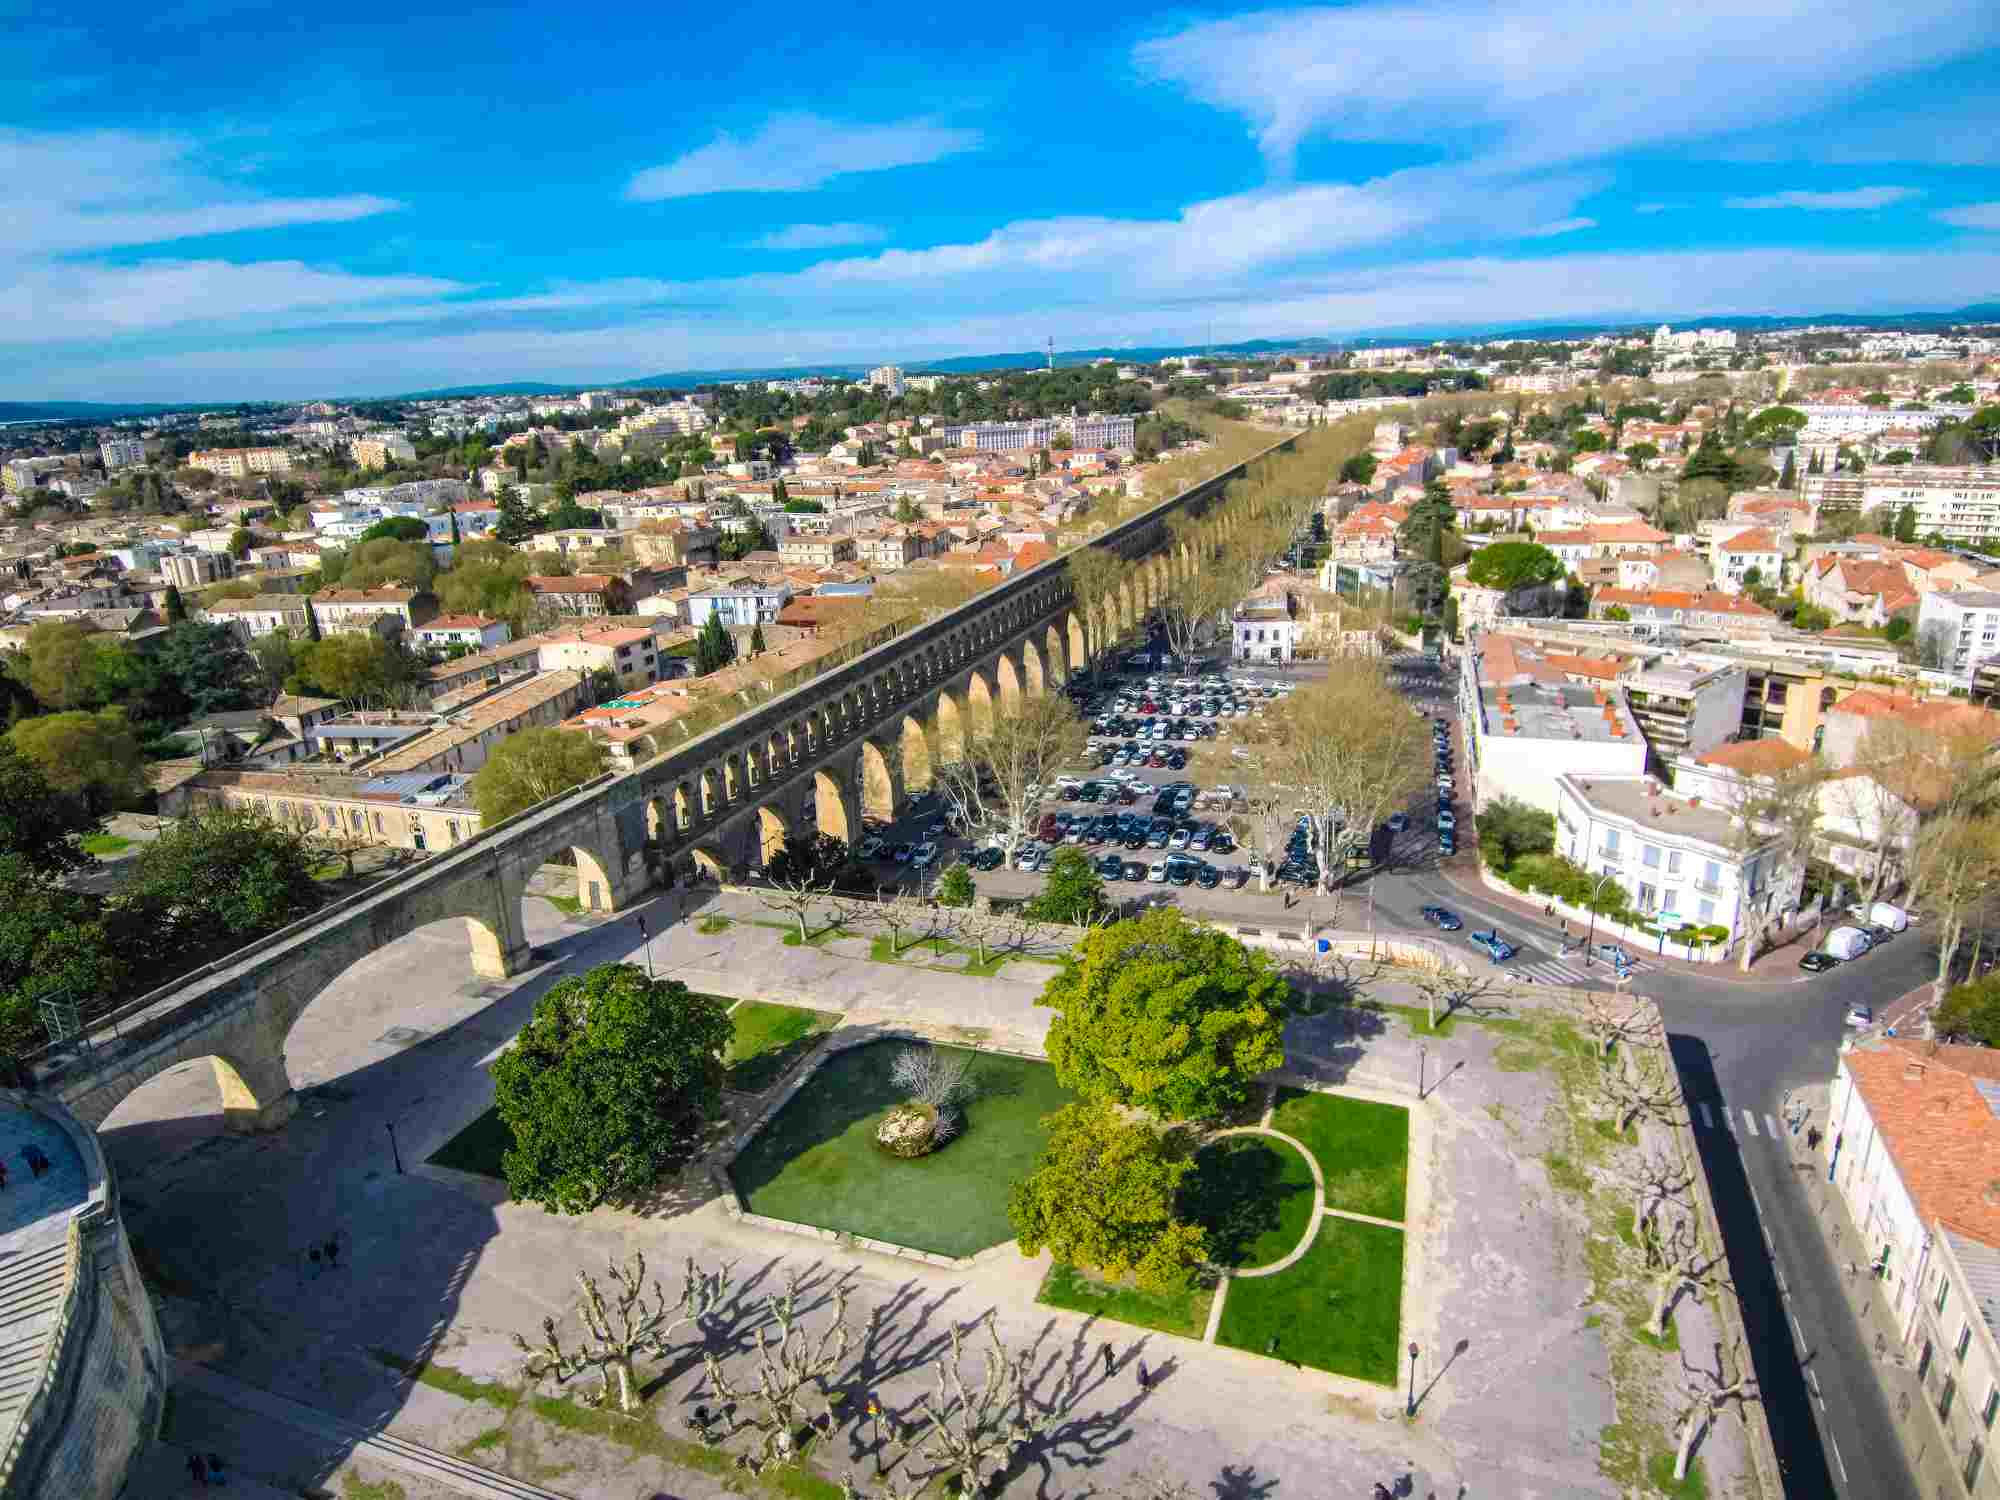 Aqueduct of Montpellier from a drone (France)